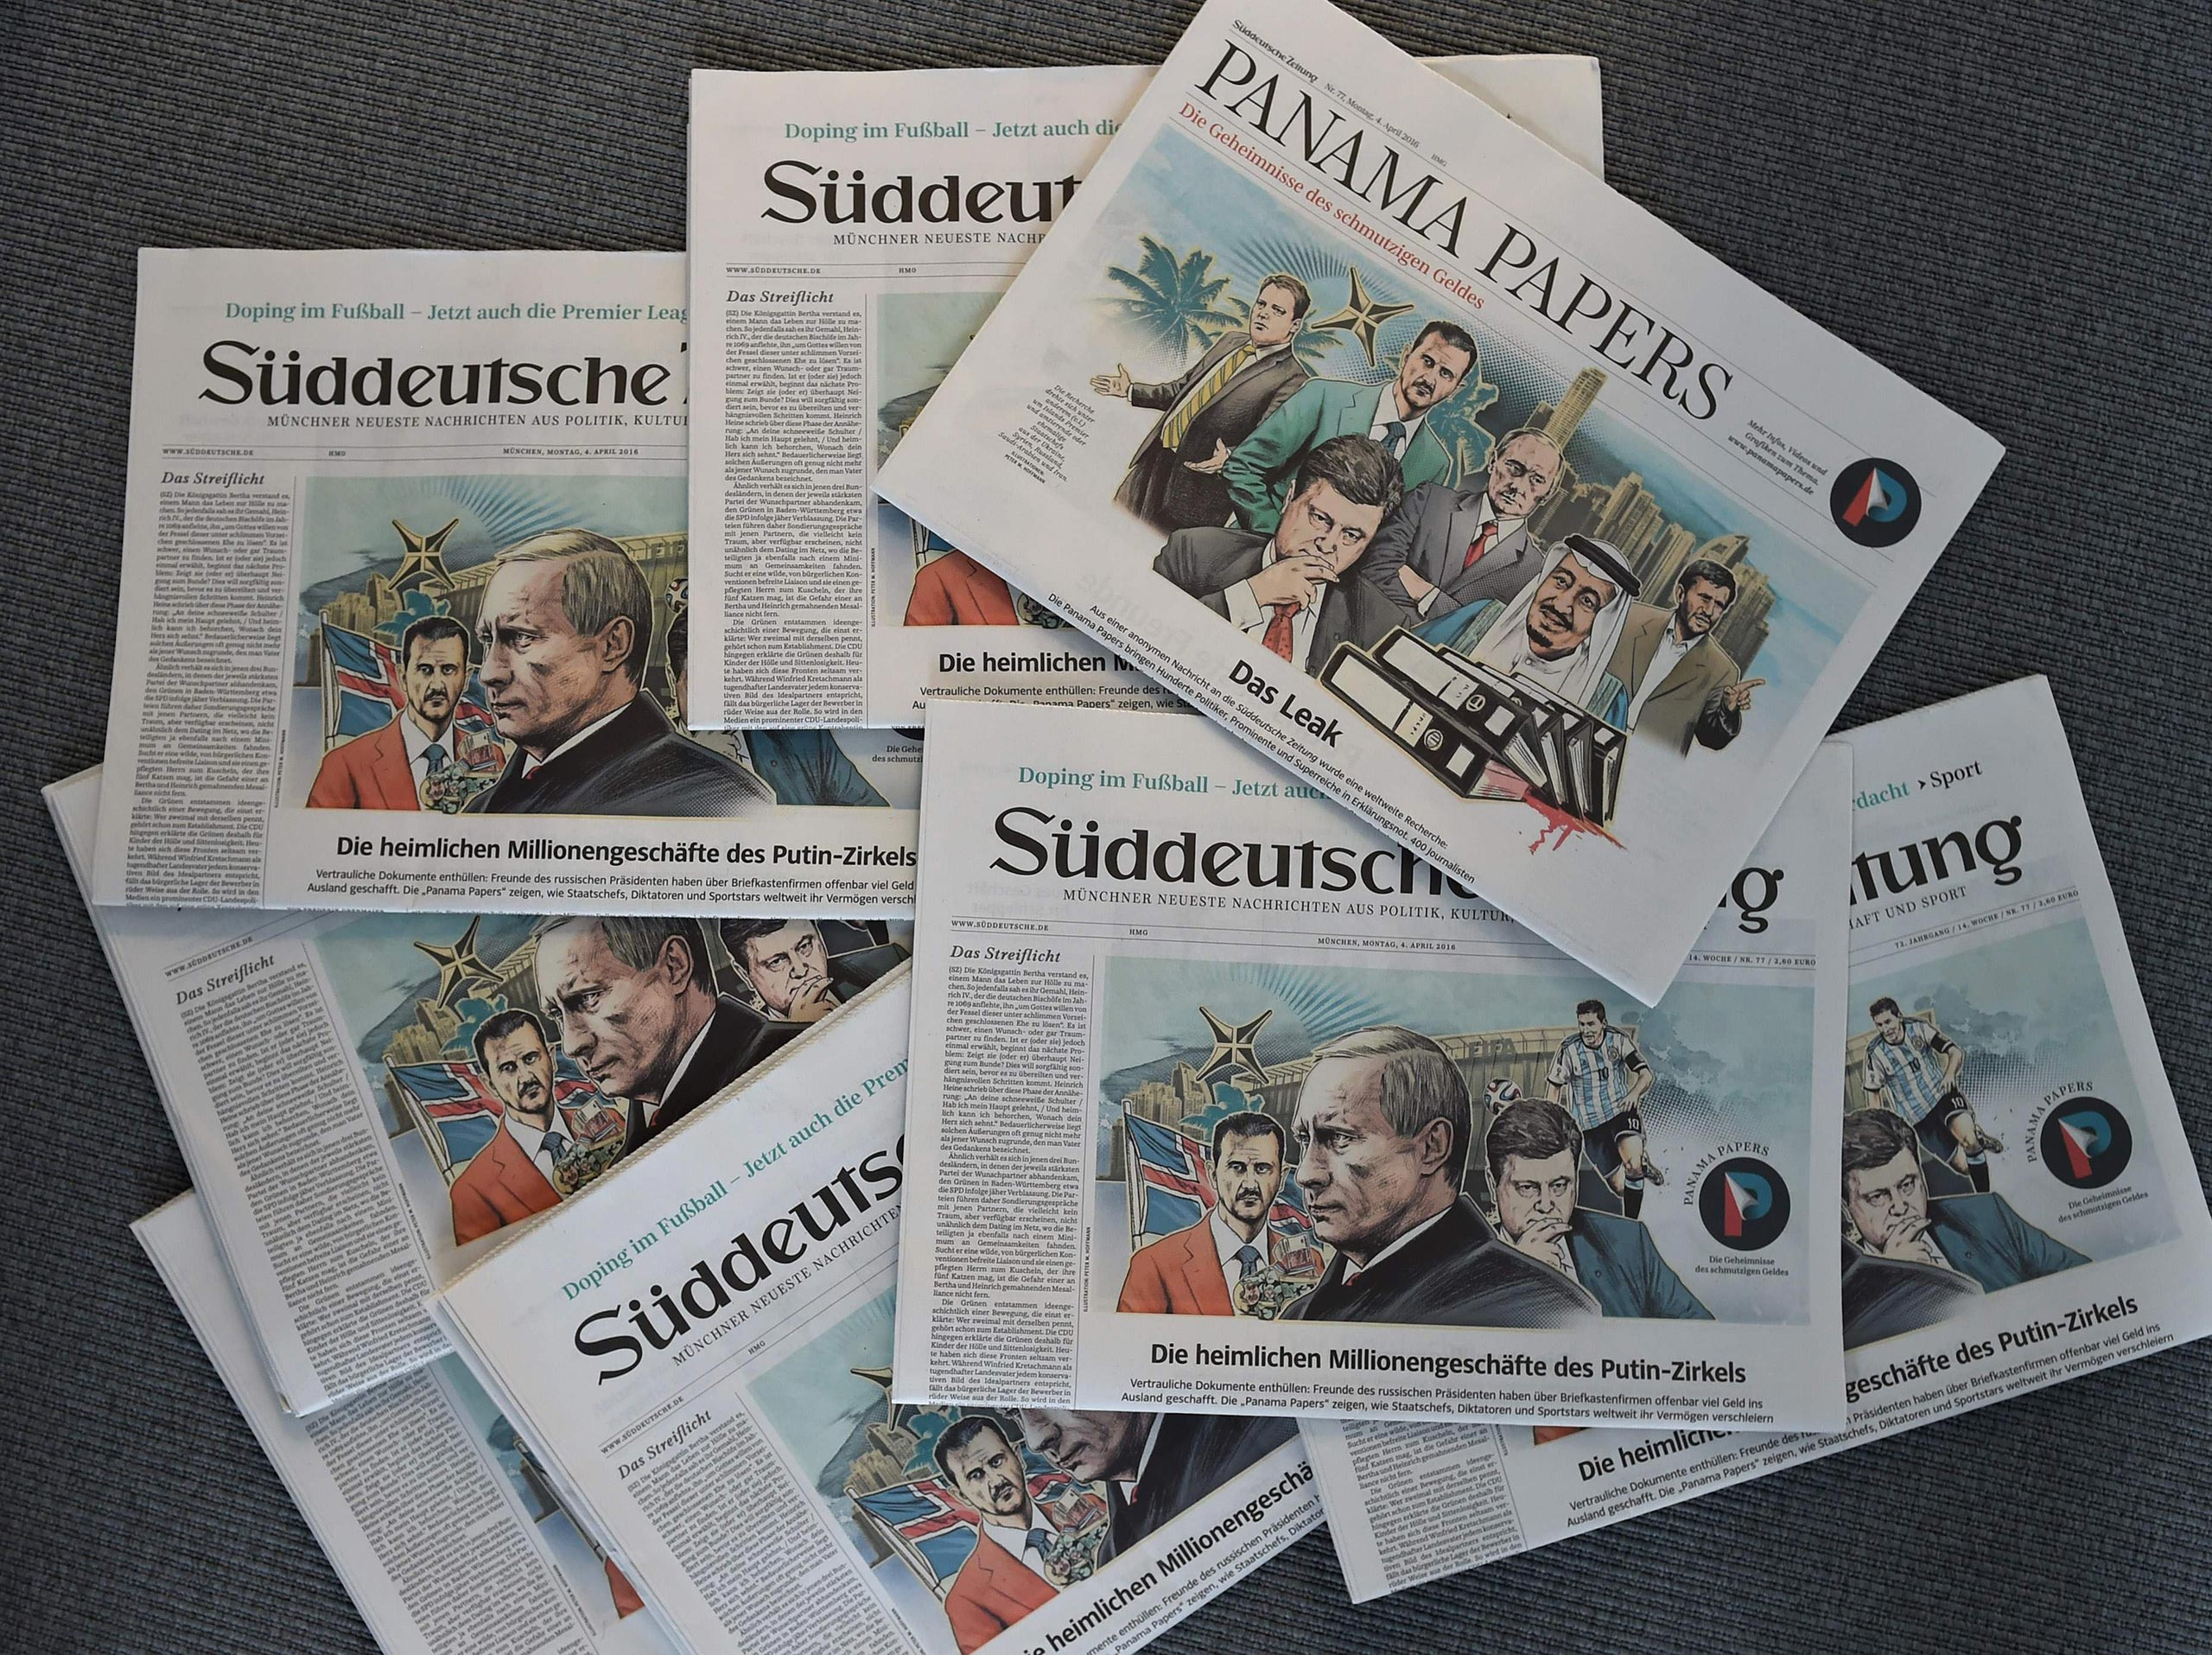 Issues of the German daily Sueddeutsche Zeitung, featuring illustrations of leaders including Russian President Vladimir Putin by Peter M Hoffmann, are seen at the newspaper's office in Munich, Germany, April 7, 2016.